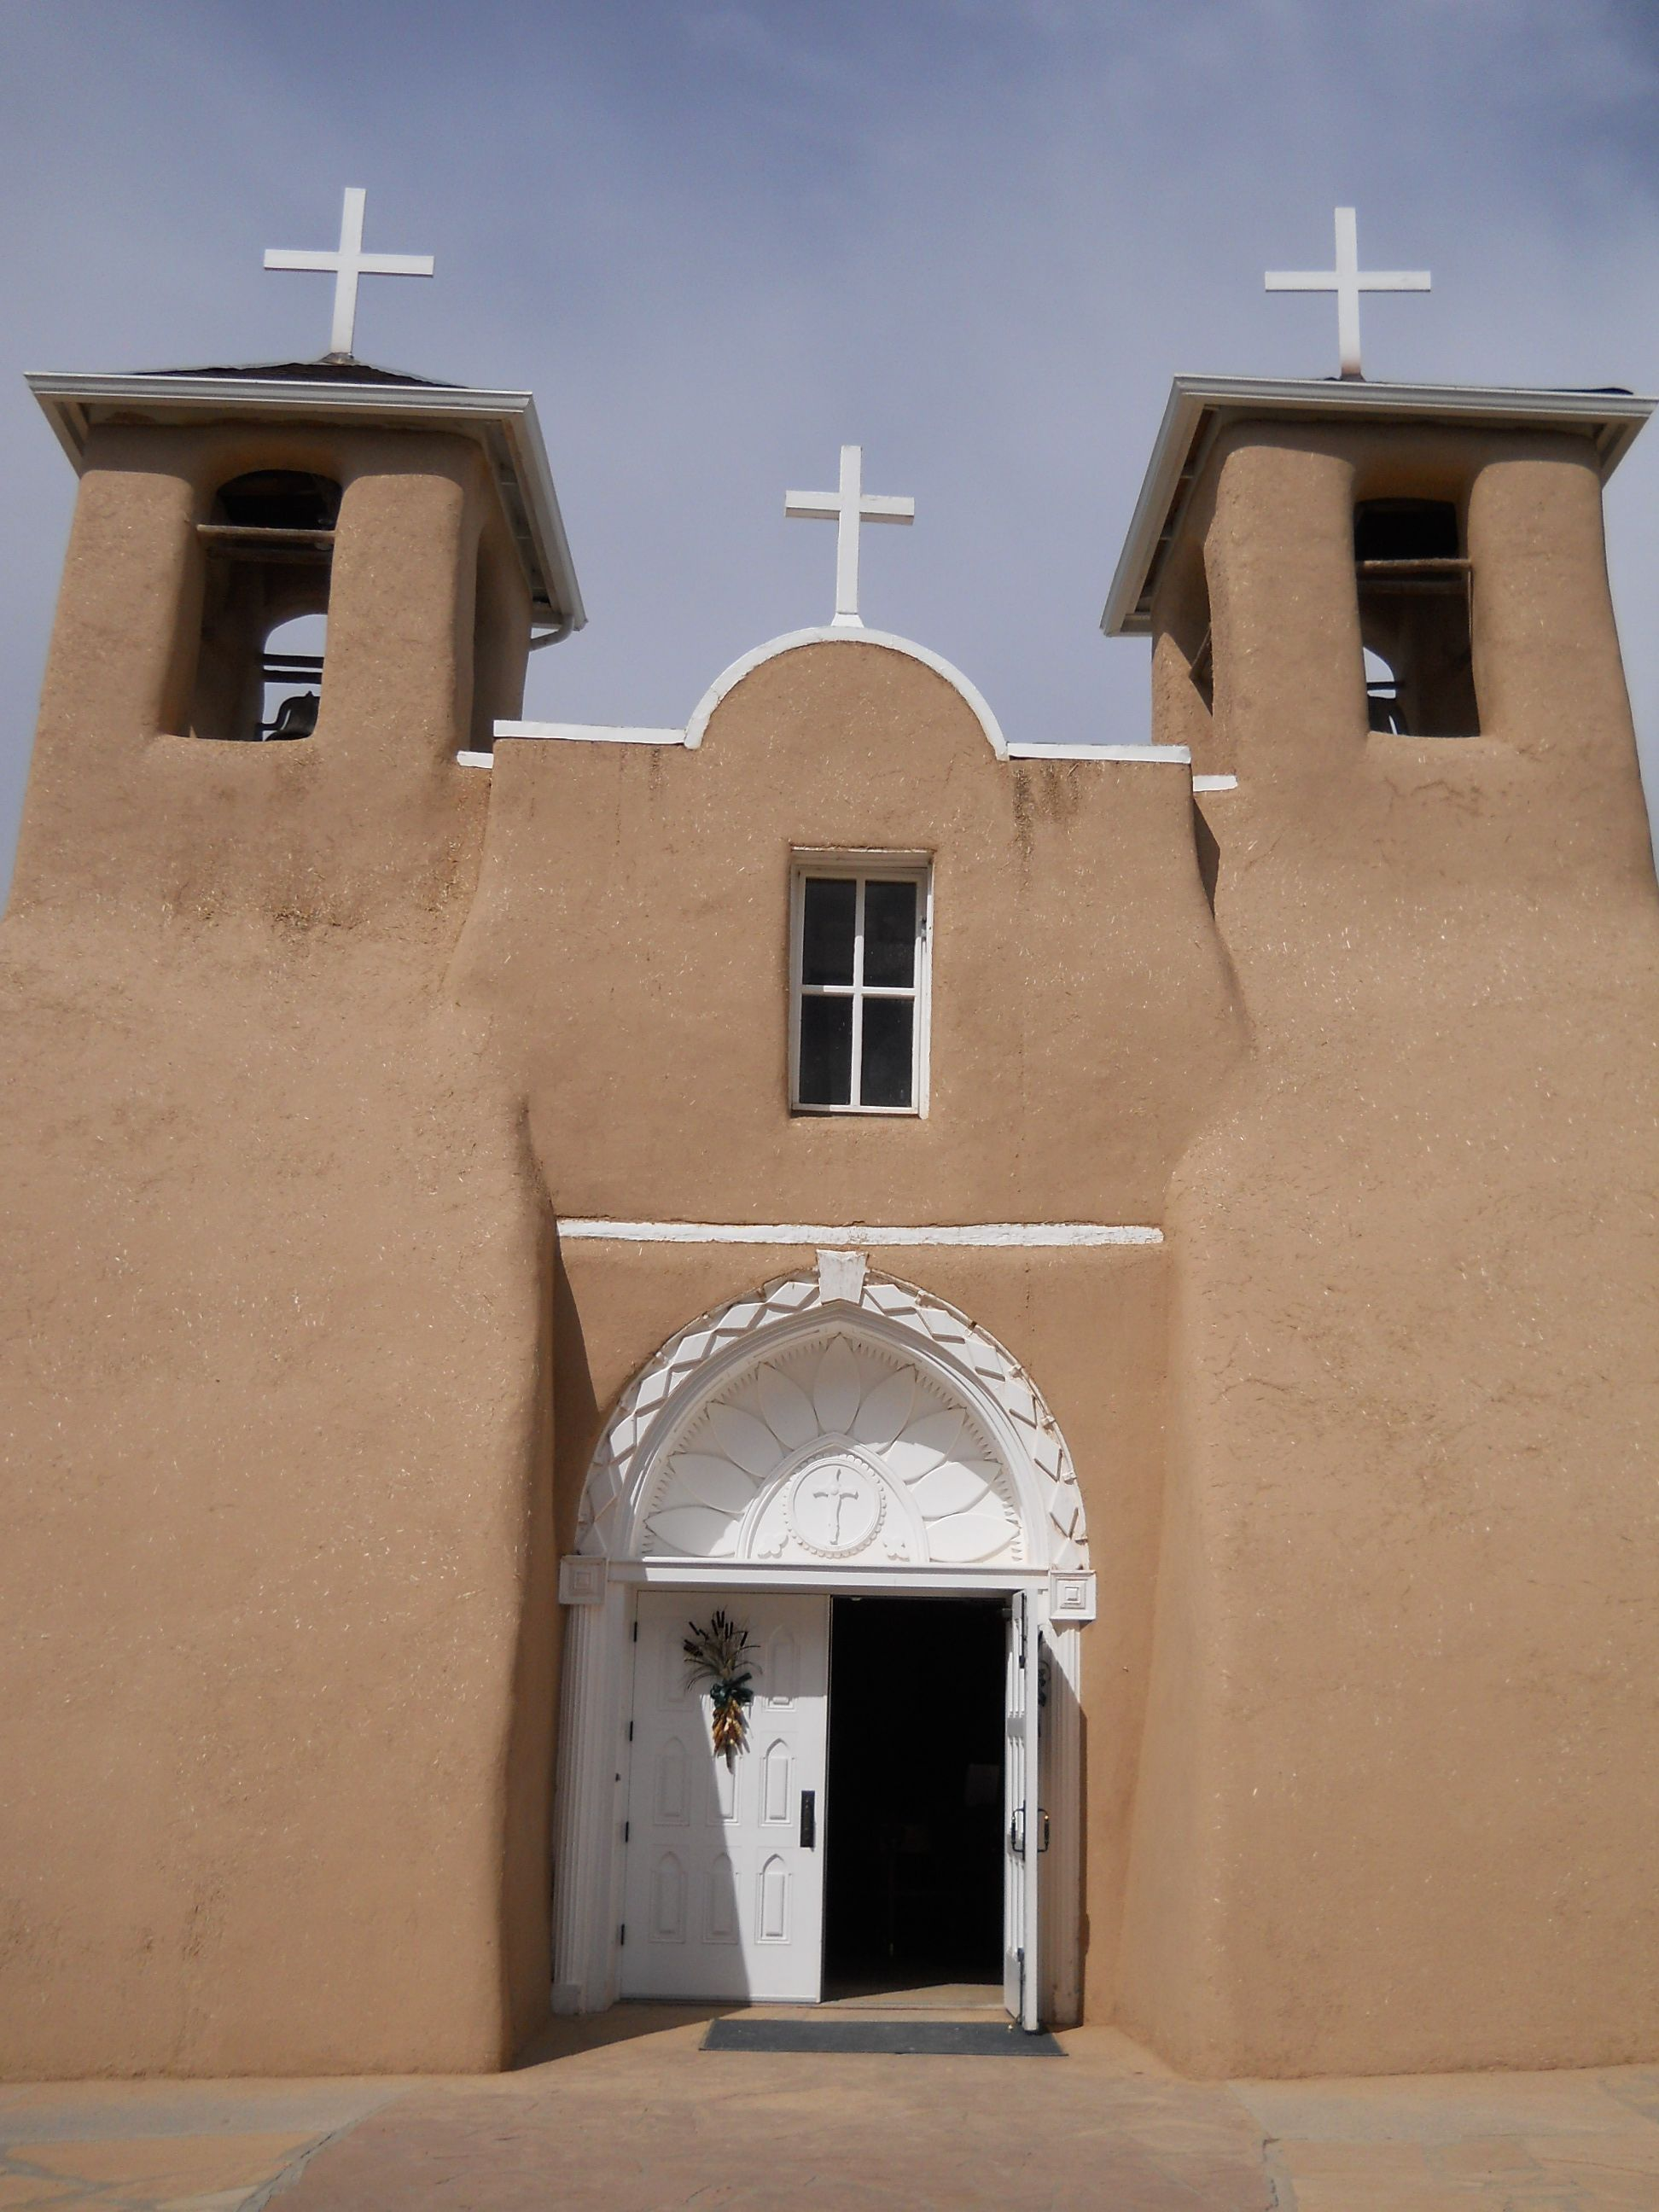 St. Francis de Assisi Ranchito de Taos....New Mexico  this is truly inspiring